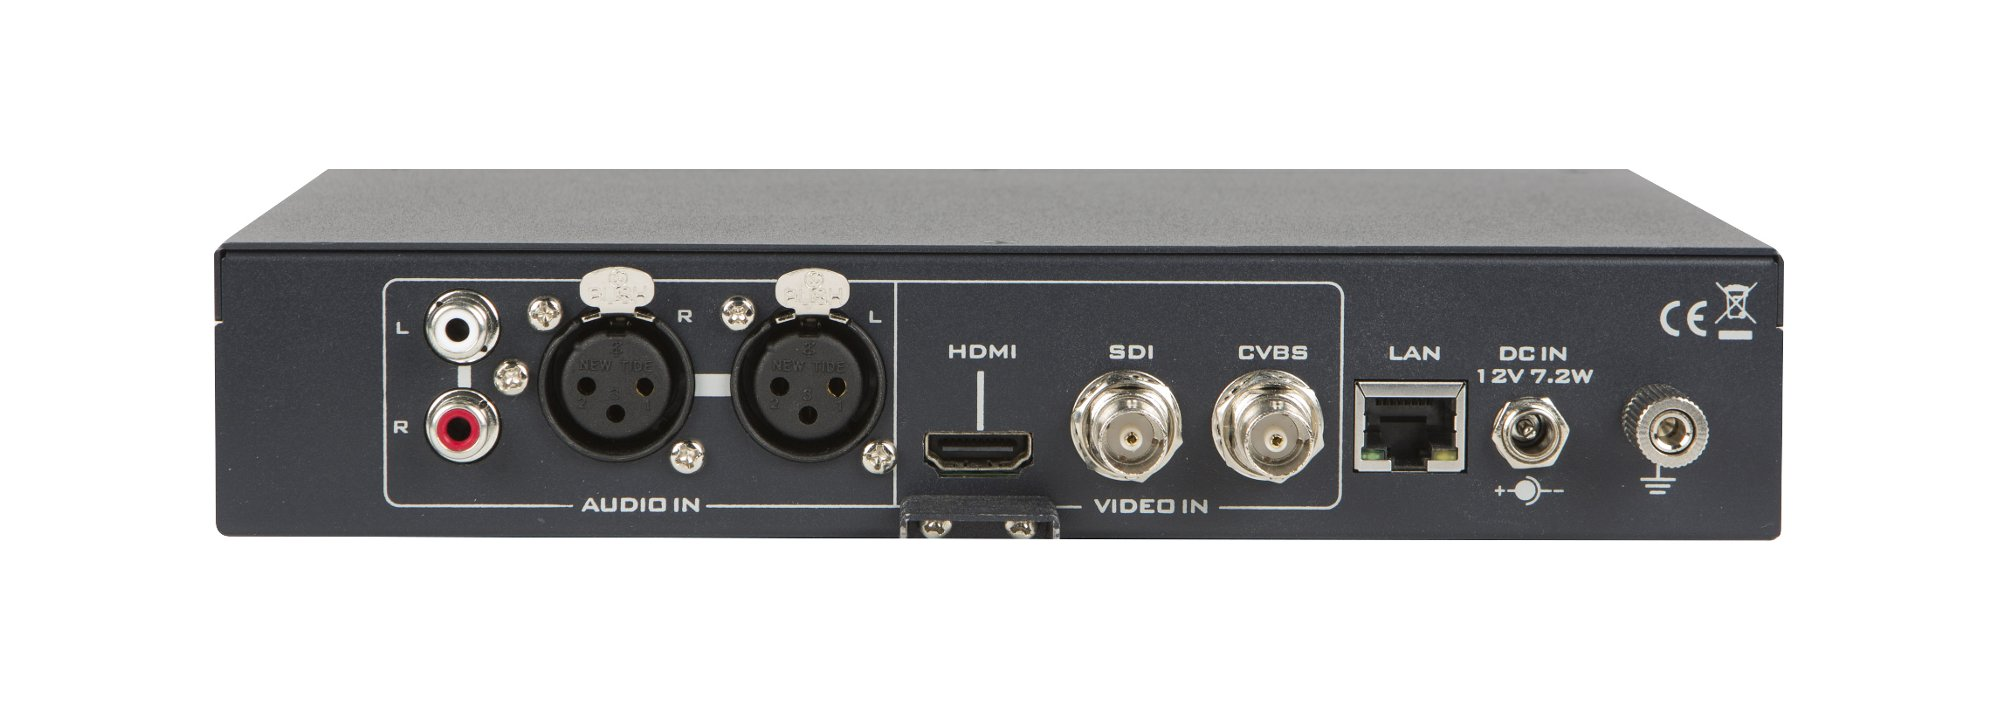 Datavideo NVS-25 H 264 Video Streaming Server And Recorder